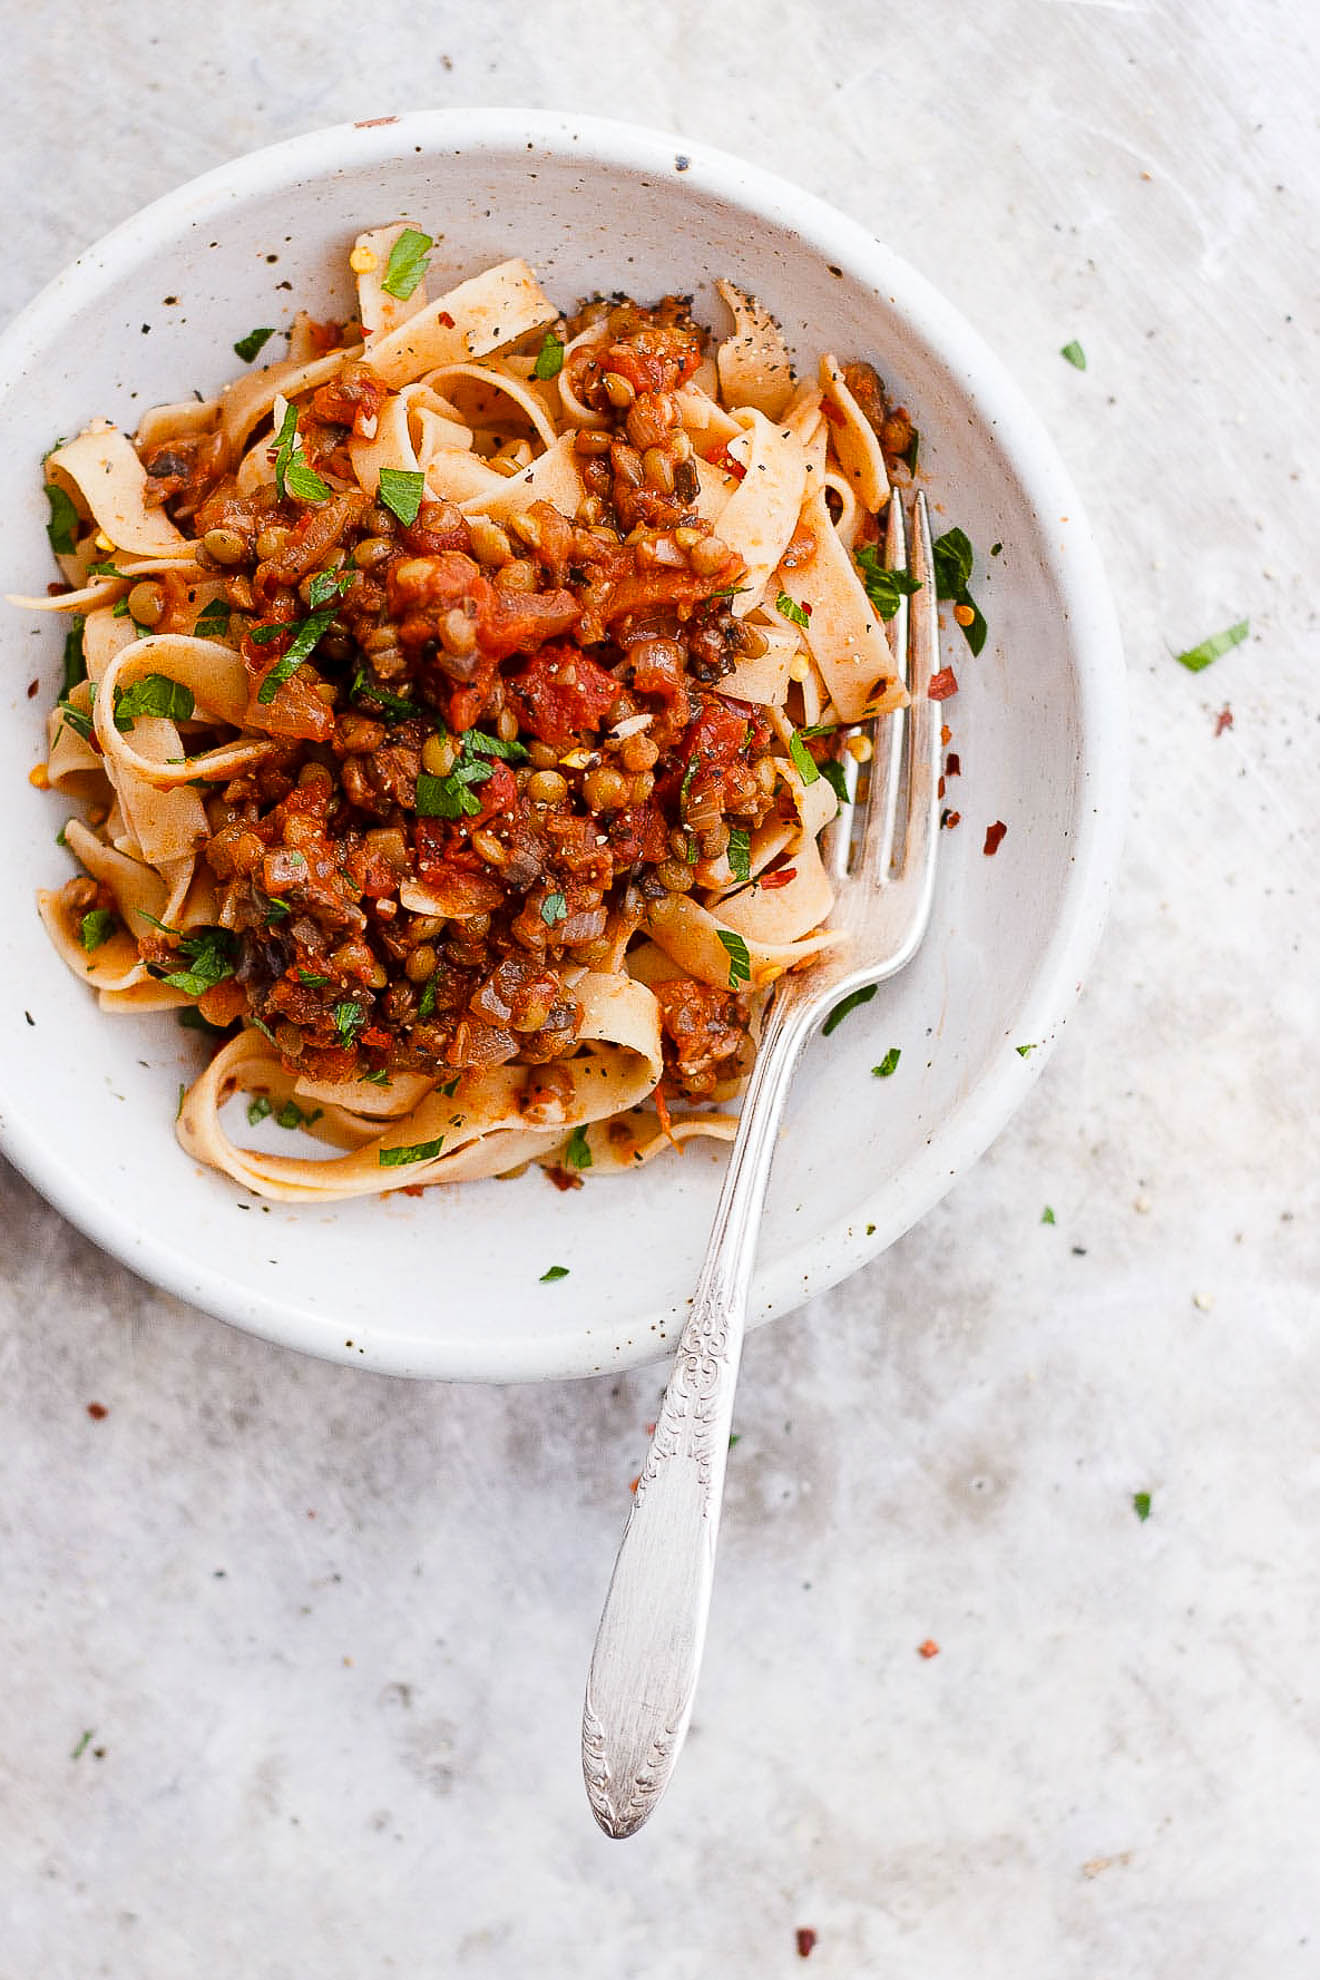 Lentil Bolognese Sauce with Mushrooms